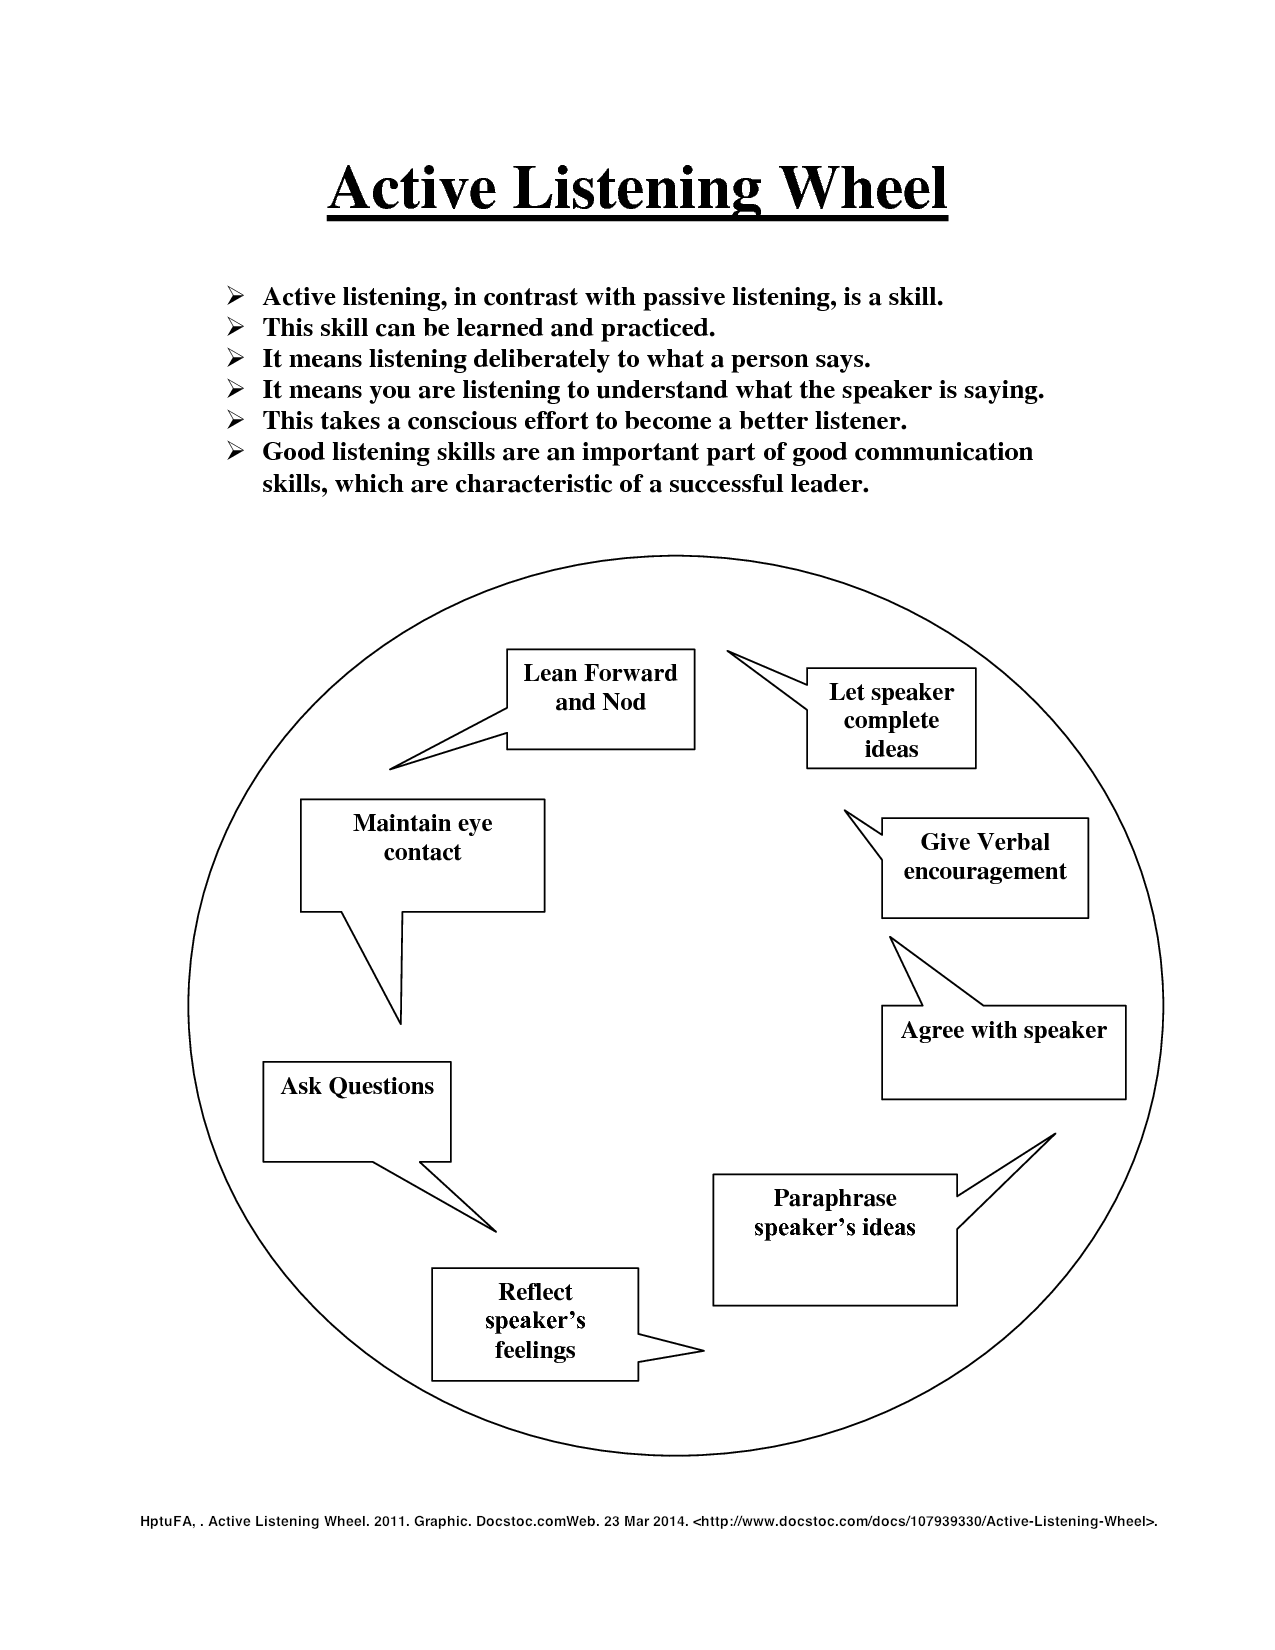 Active Listening Is A Skill That Needs Practice You Can Use This Graphic Organizer To Refine